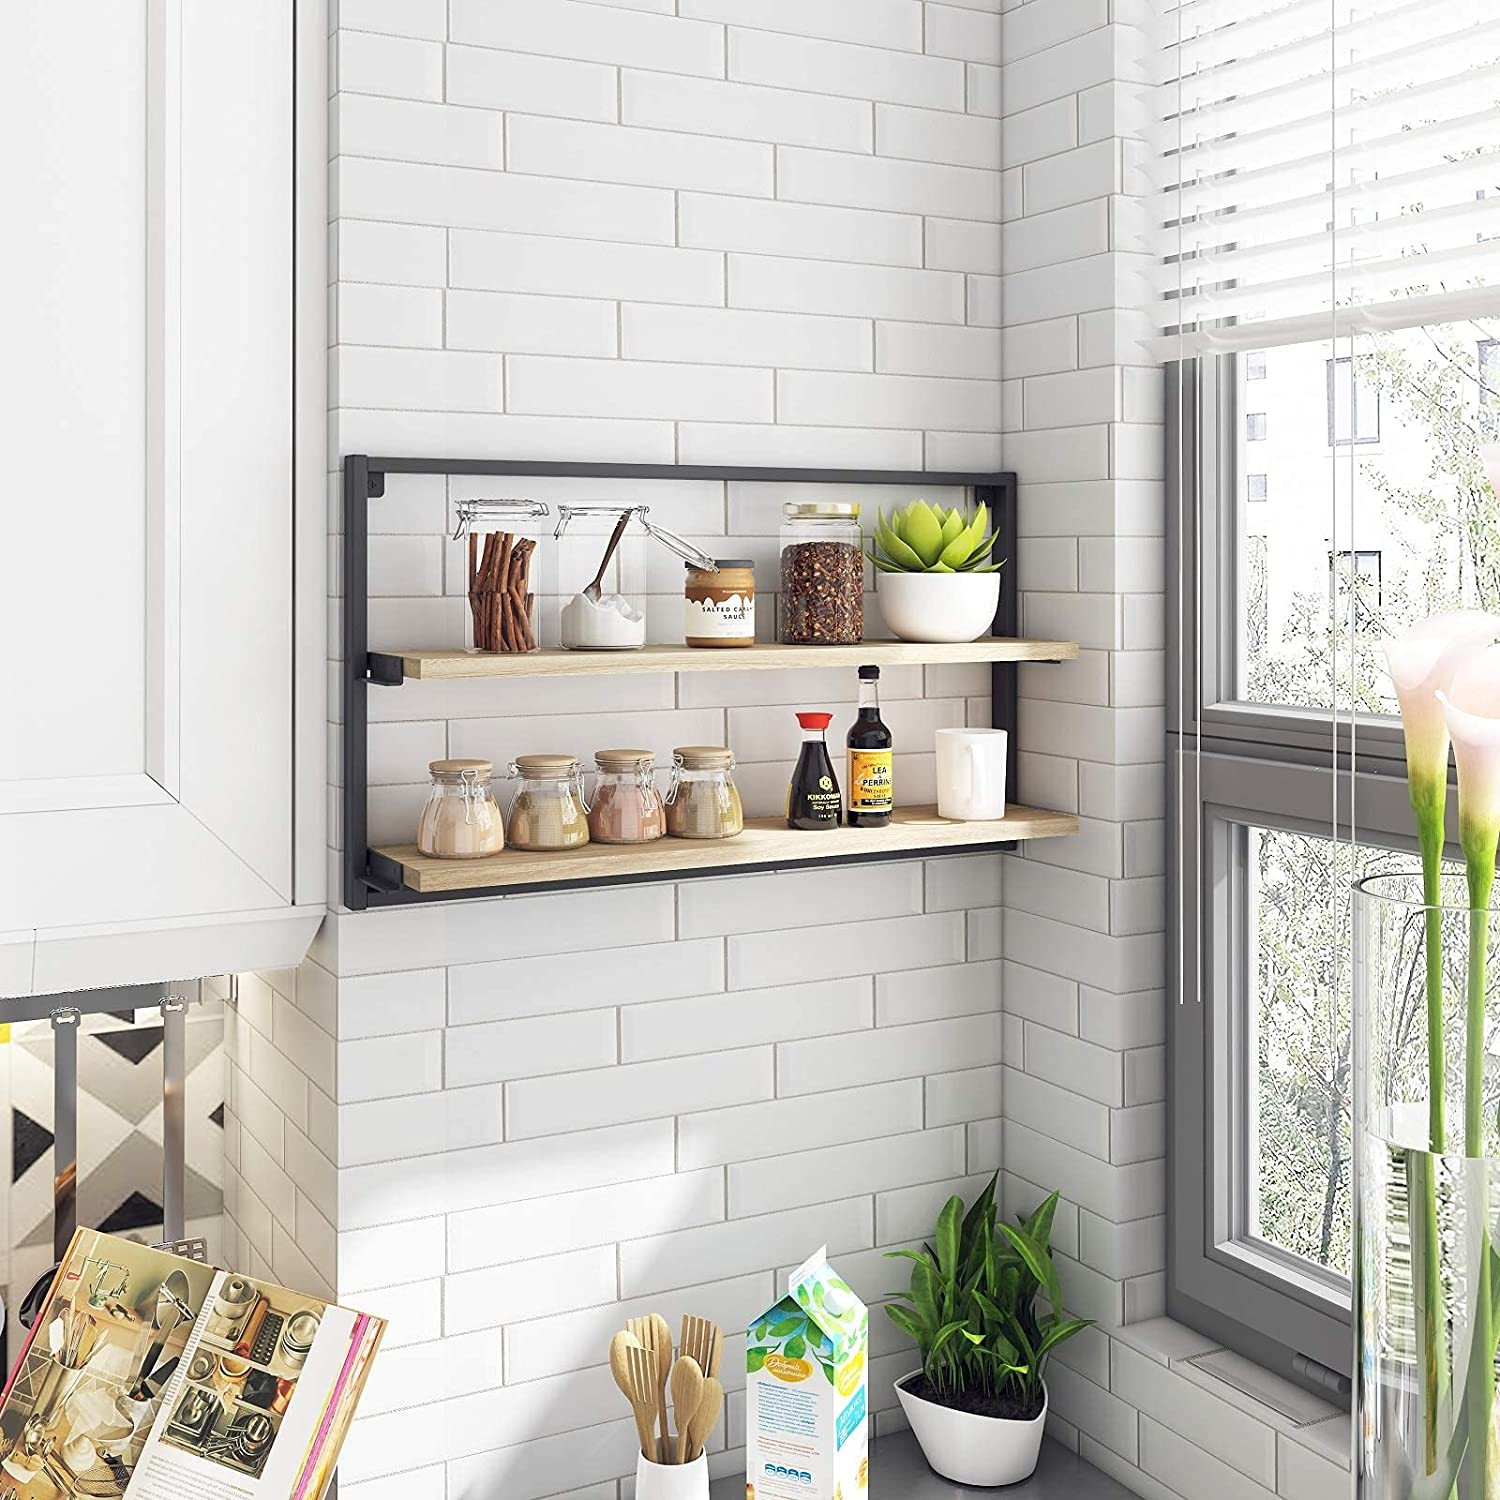 Year Color 2-Tier Floating Shelves for Bathroom/Bedroom/Kitchen/Living Room Wall Mounted Storage Shelf Organizer with Black Metal Bracket Wall Decor Display Ledge with Blackboard